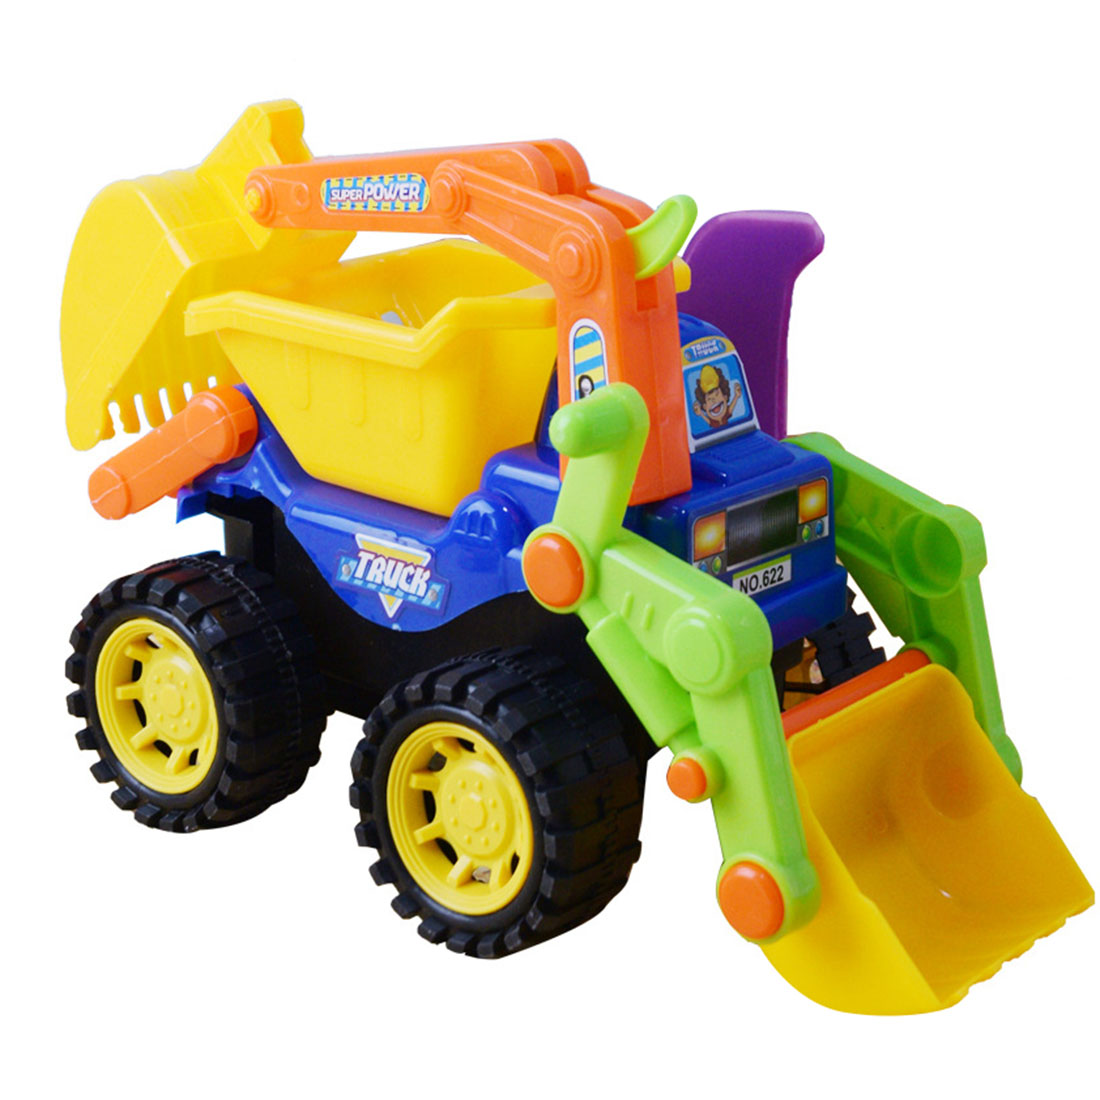 Kids Children Simulation Vehicles Excavator Car Boys Toy  Summer Toys For Beach Sand Baby Outdoor Toys Birthday Gift 2019